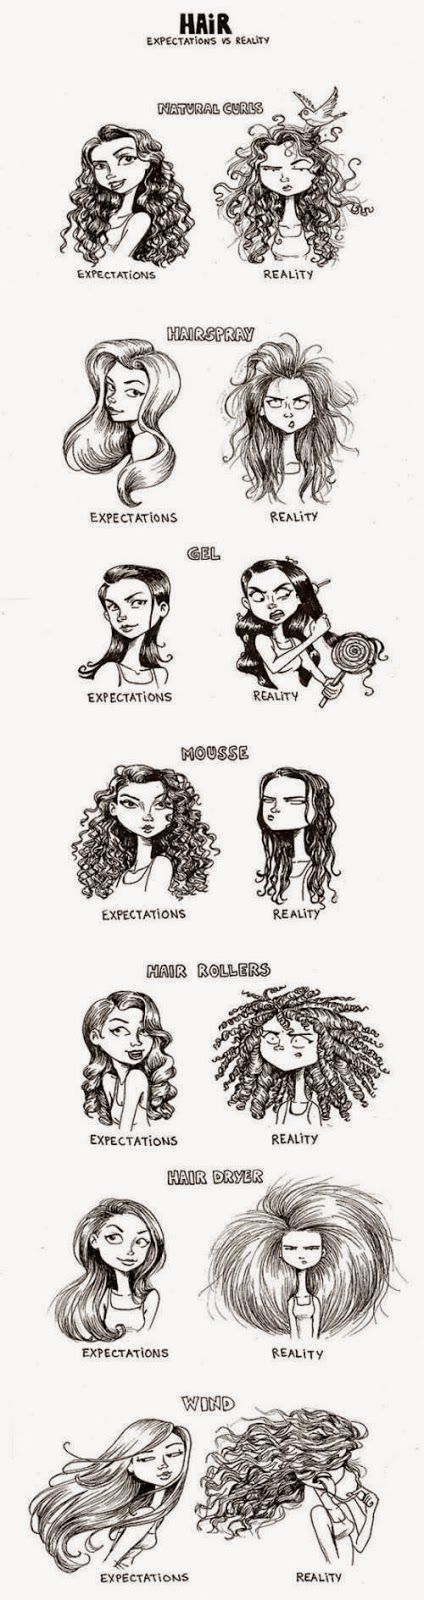 Hair products: Expectations vs. Reality